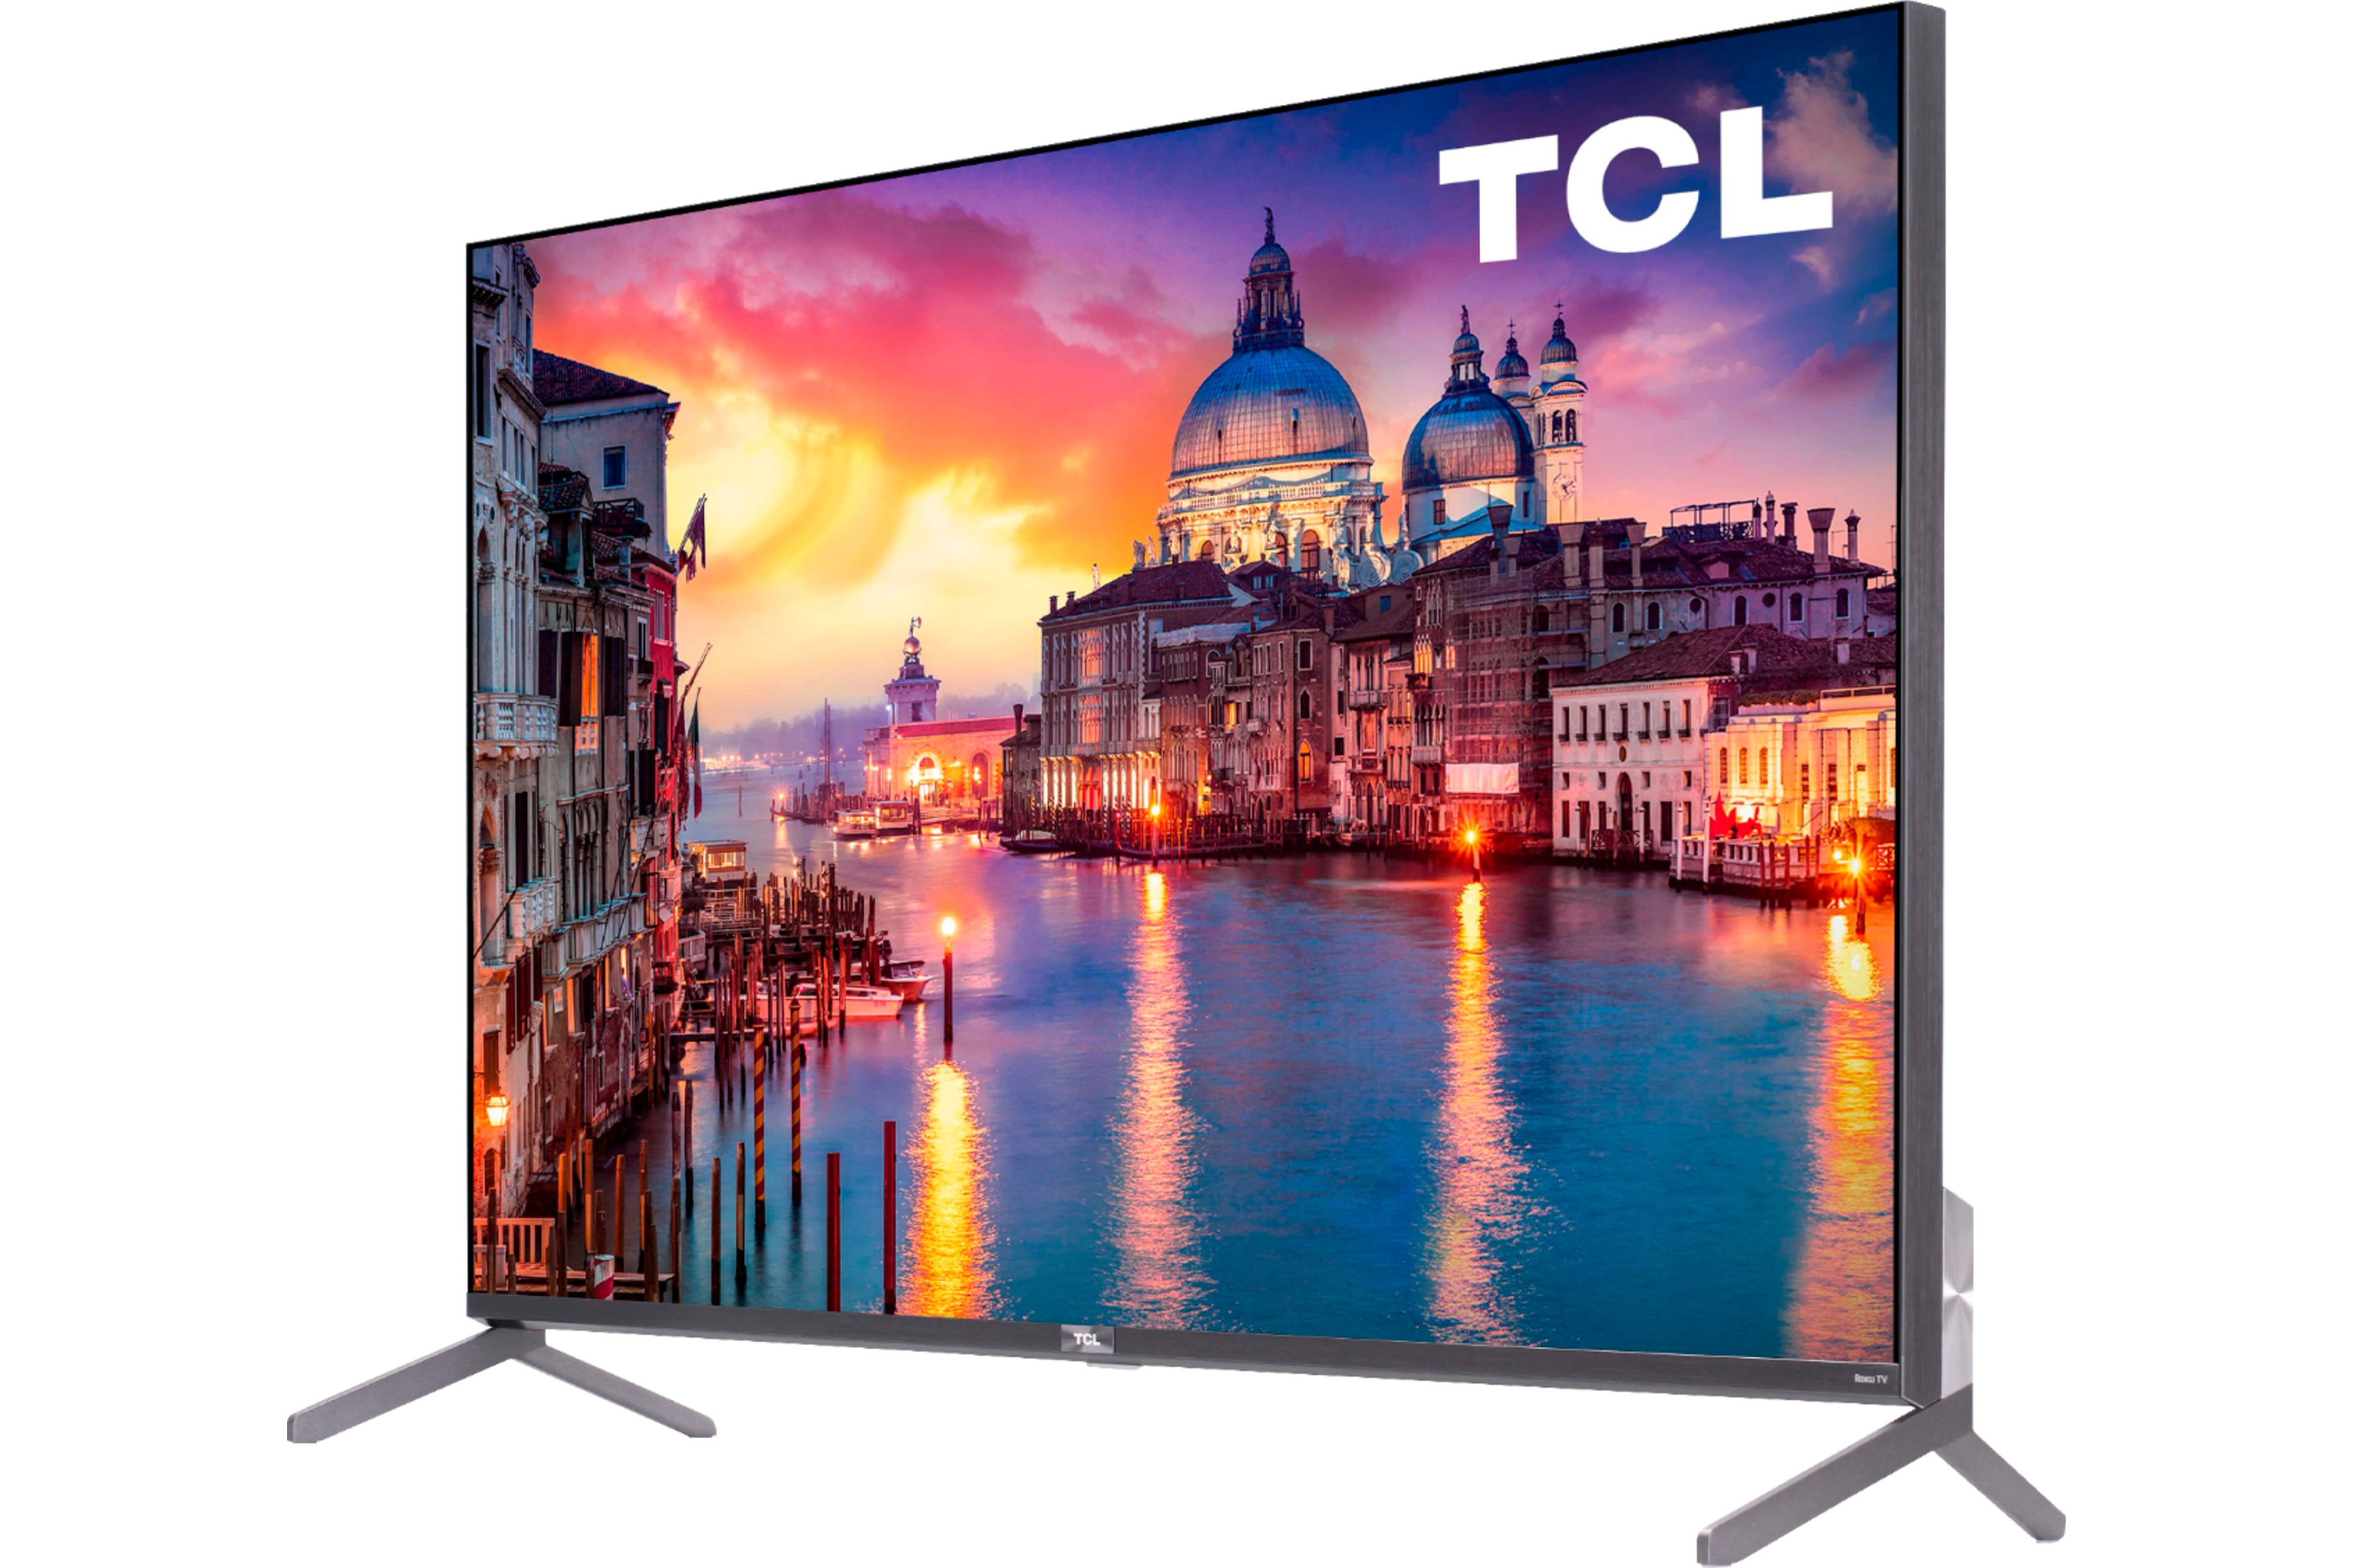 TCL Smart TV 4K model from a three-face view